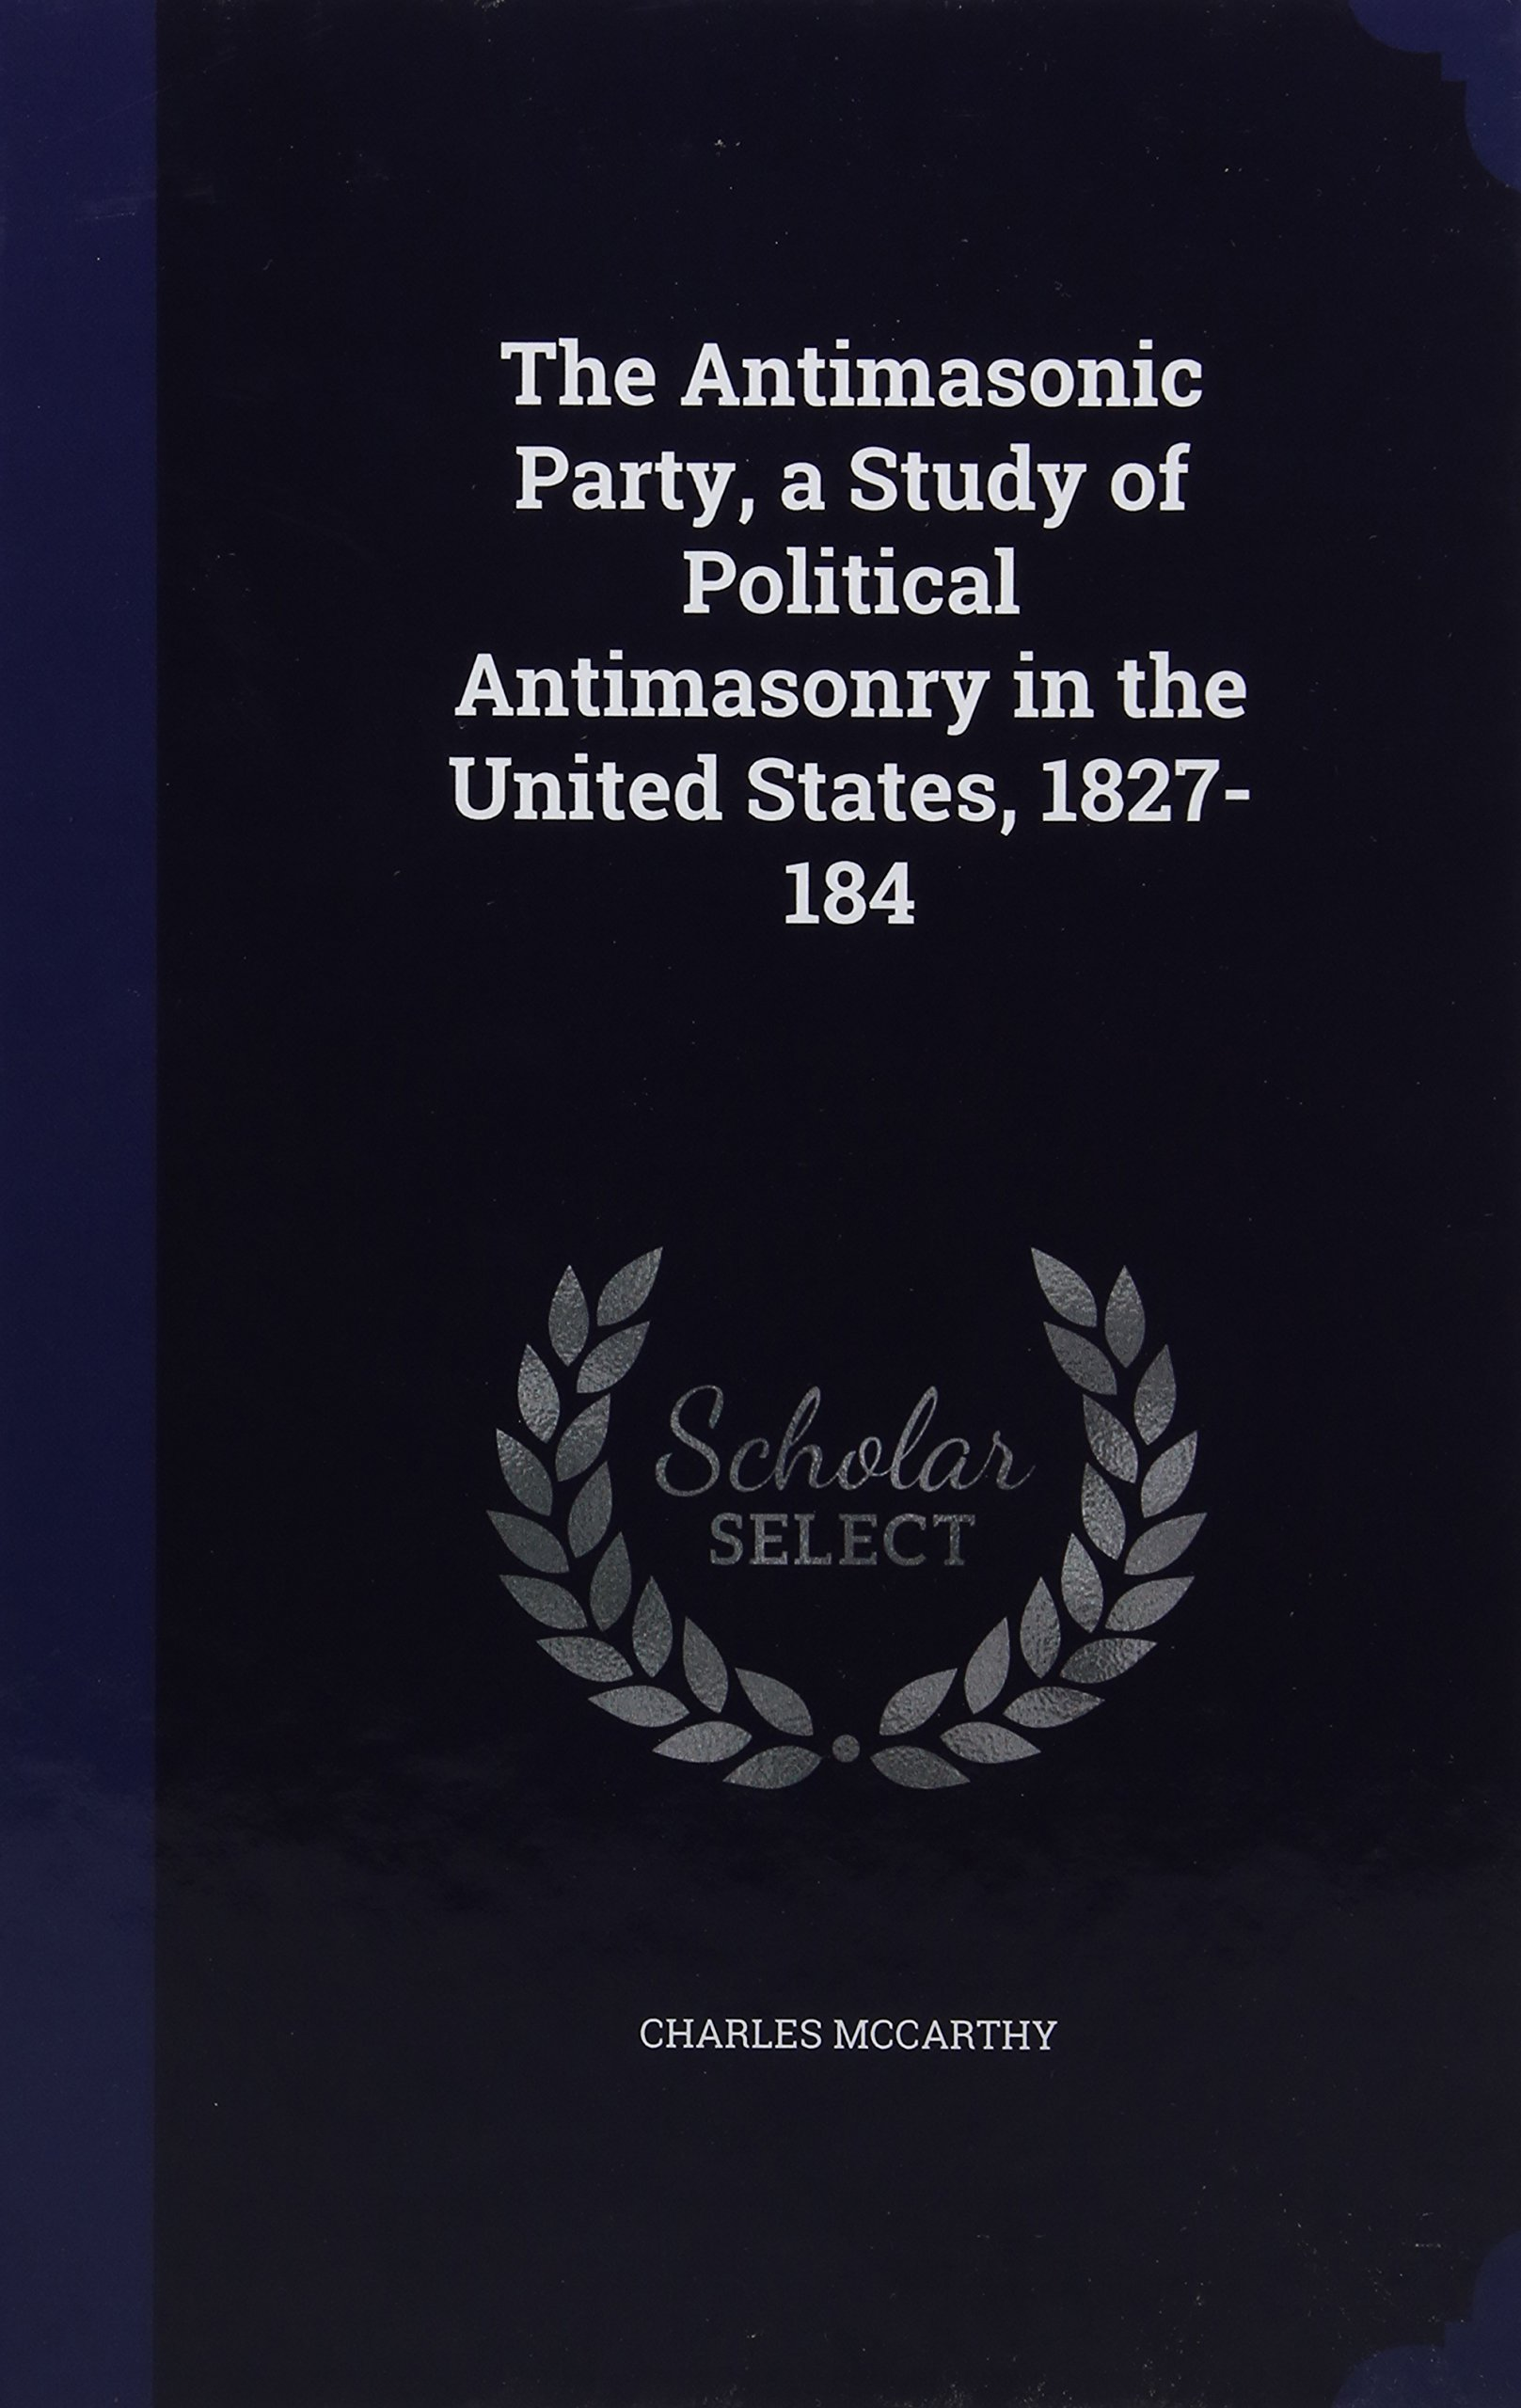 In A Political Study 184 States 1827 United The Antimasonic Antimasonry Of Party aqZZS0